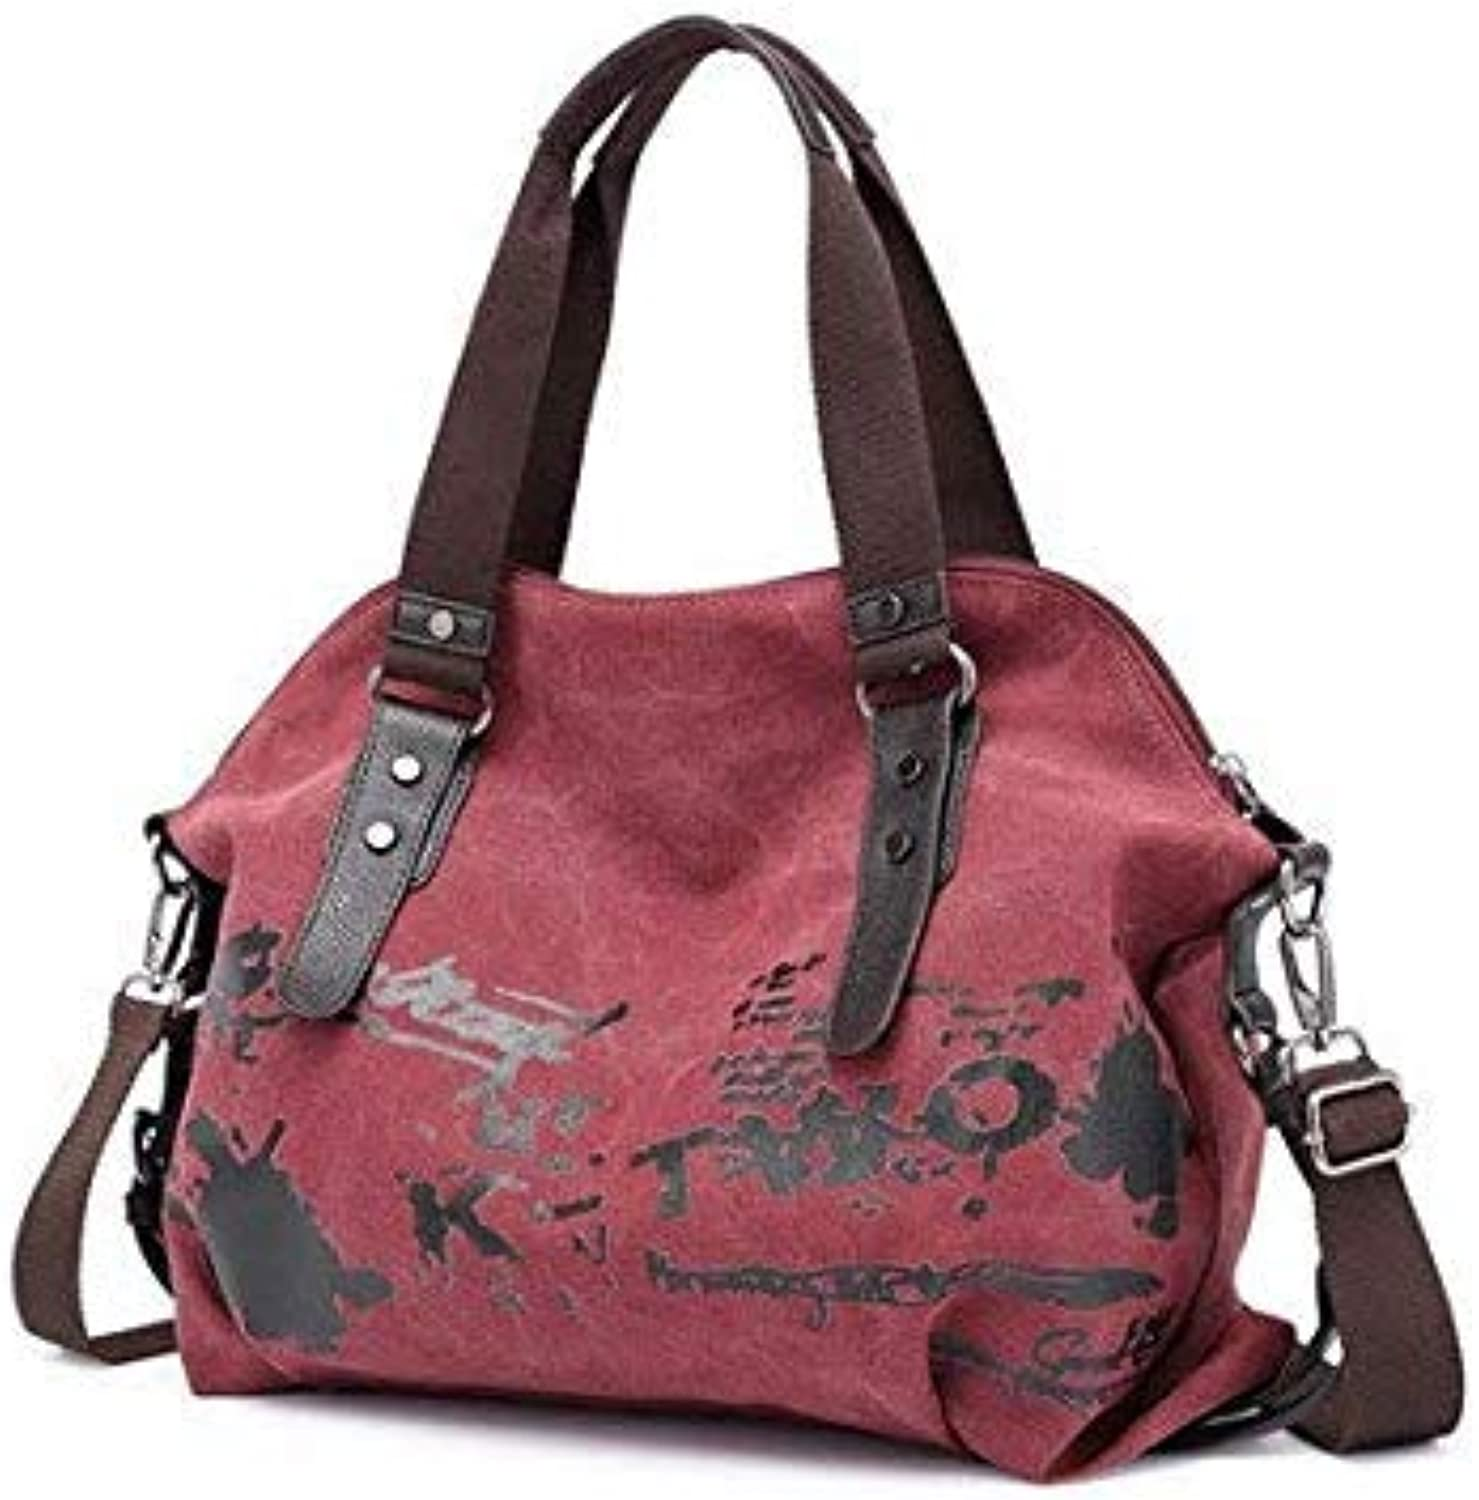 Bloomerang Women's Shoulder Bags Vintage Graffiti Canvas Handbags Famous Designer Female Shoulder Bags Ladies Totes Fashion Large Handbags color Red 49x12x35cm